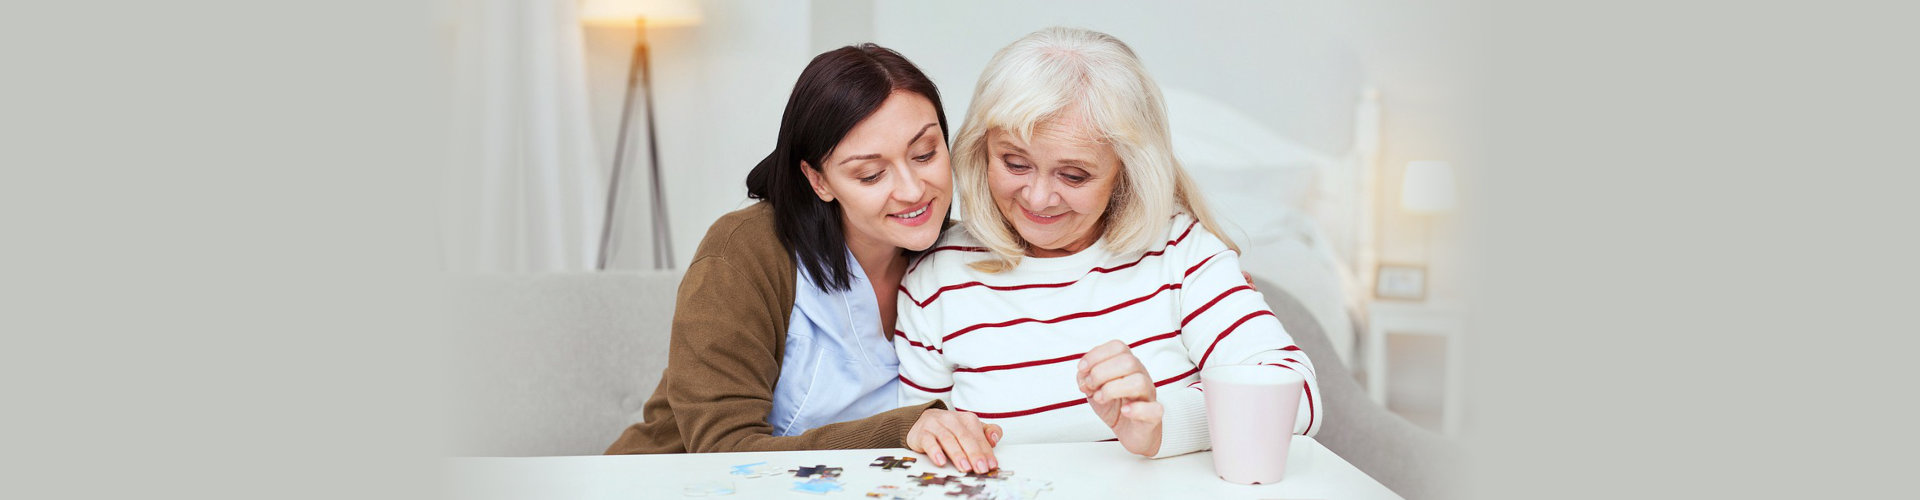 caregiver and senior woman solving a puzzle